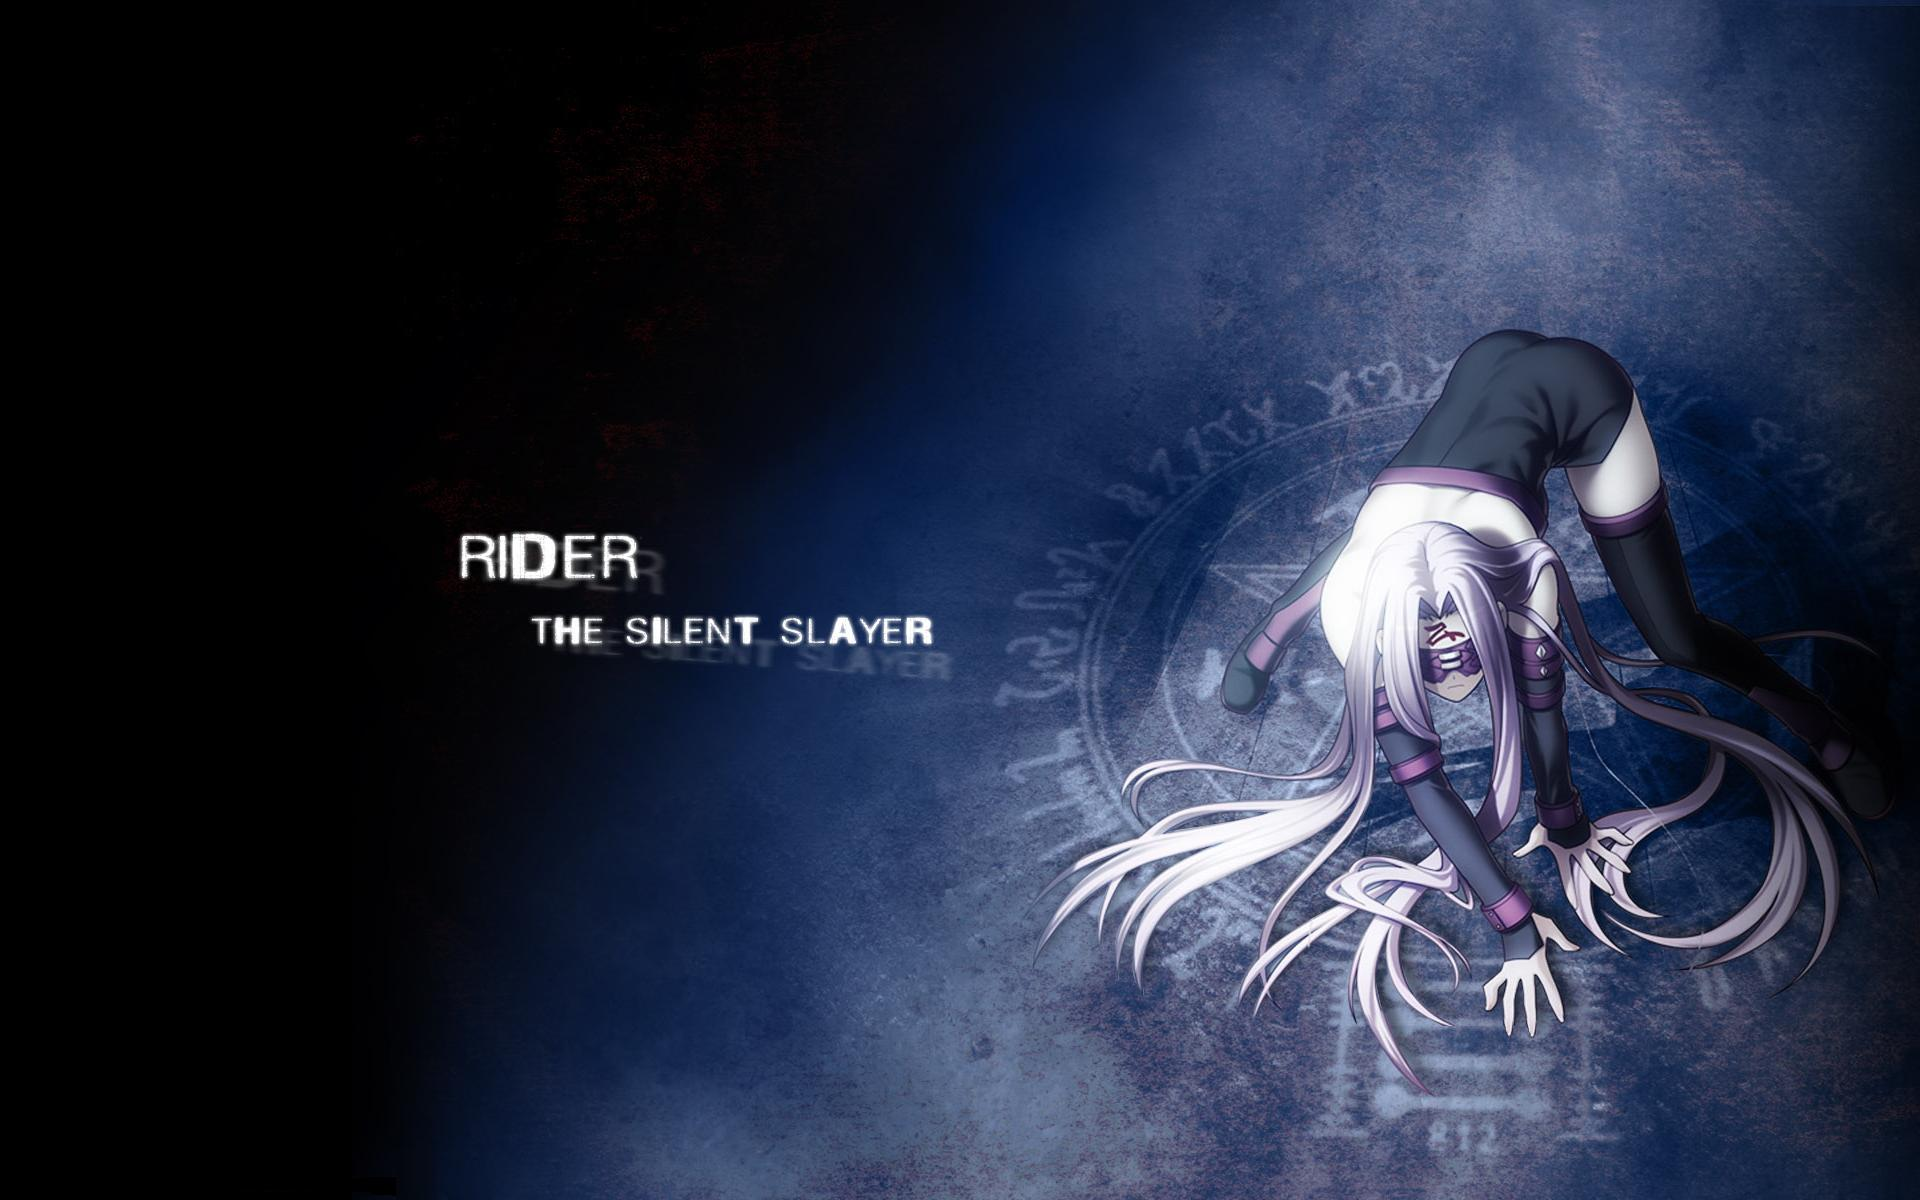 Anime - Fate/Stay Night  - Rider Wallpaper